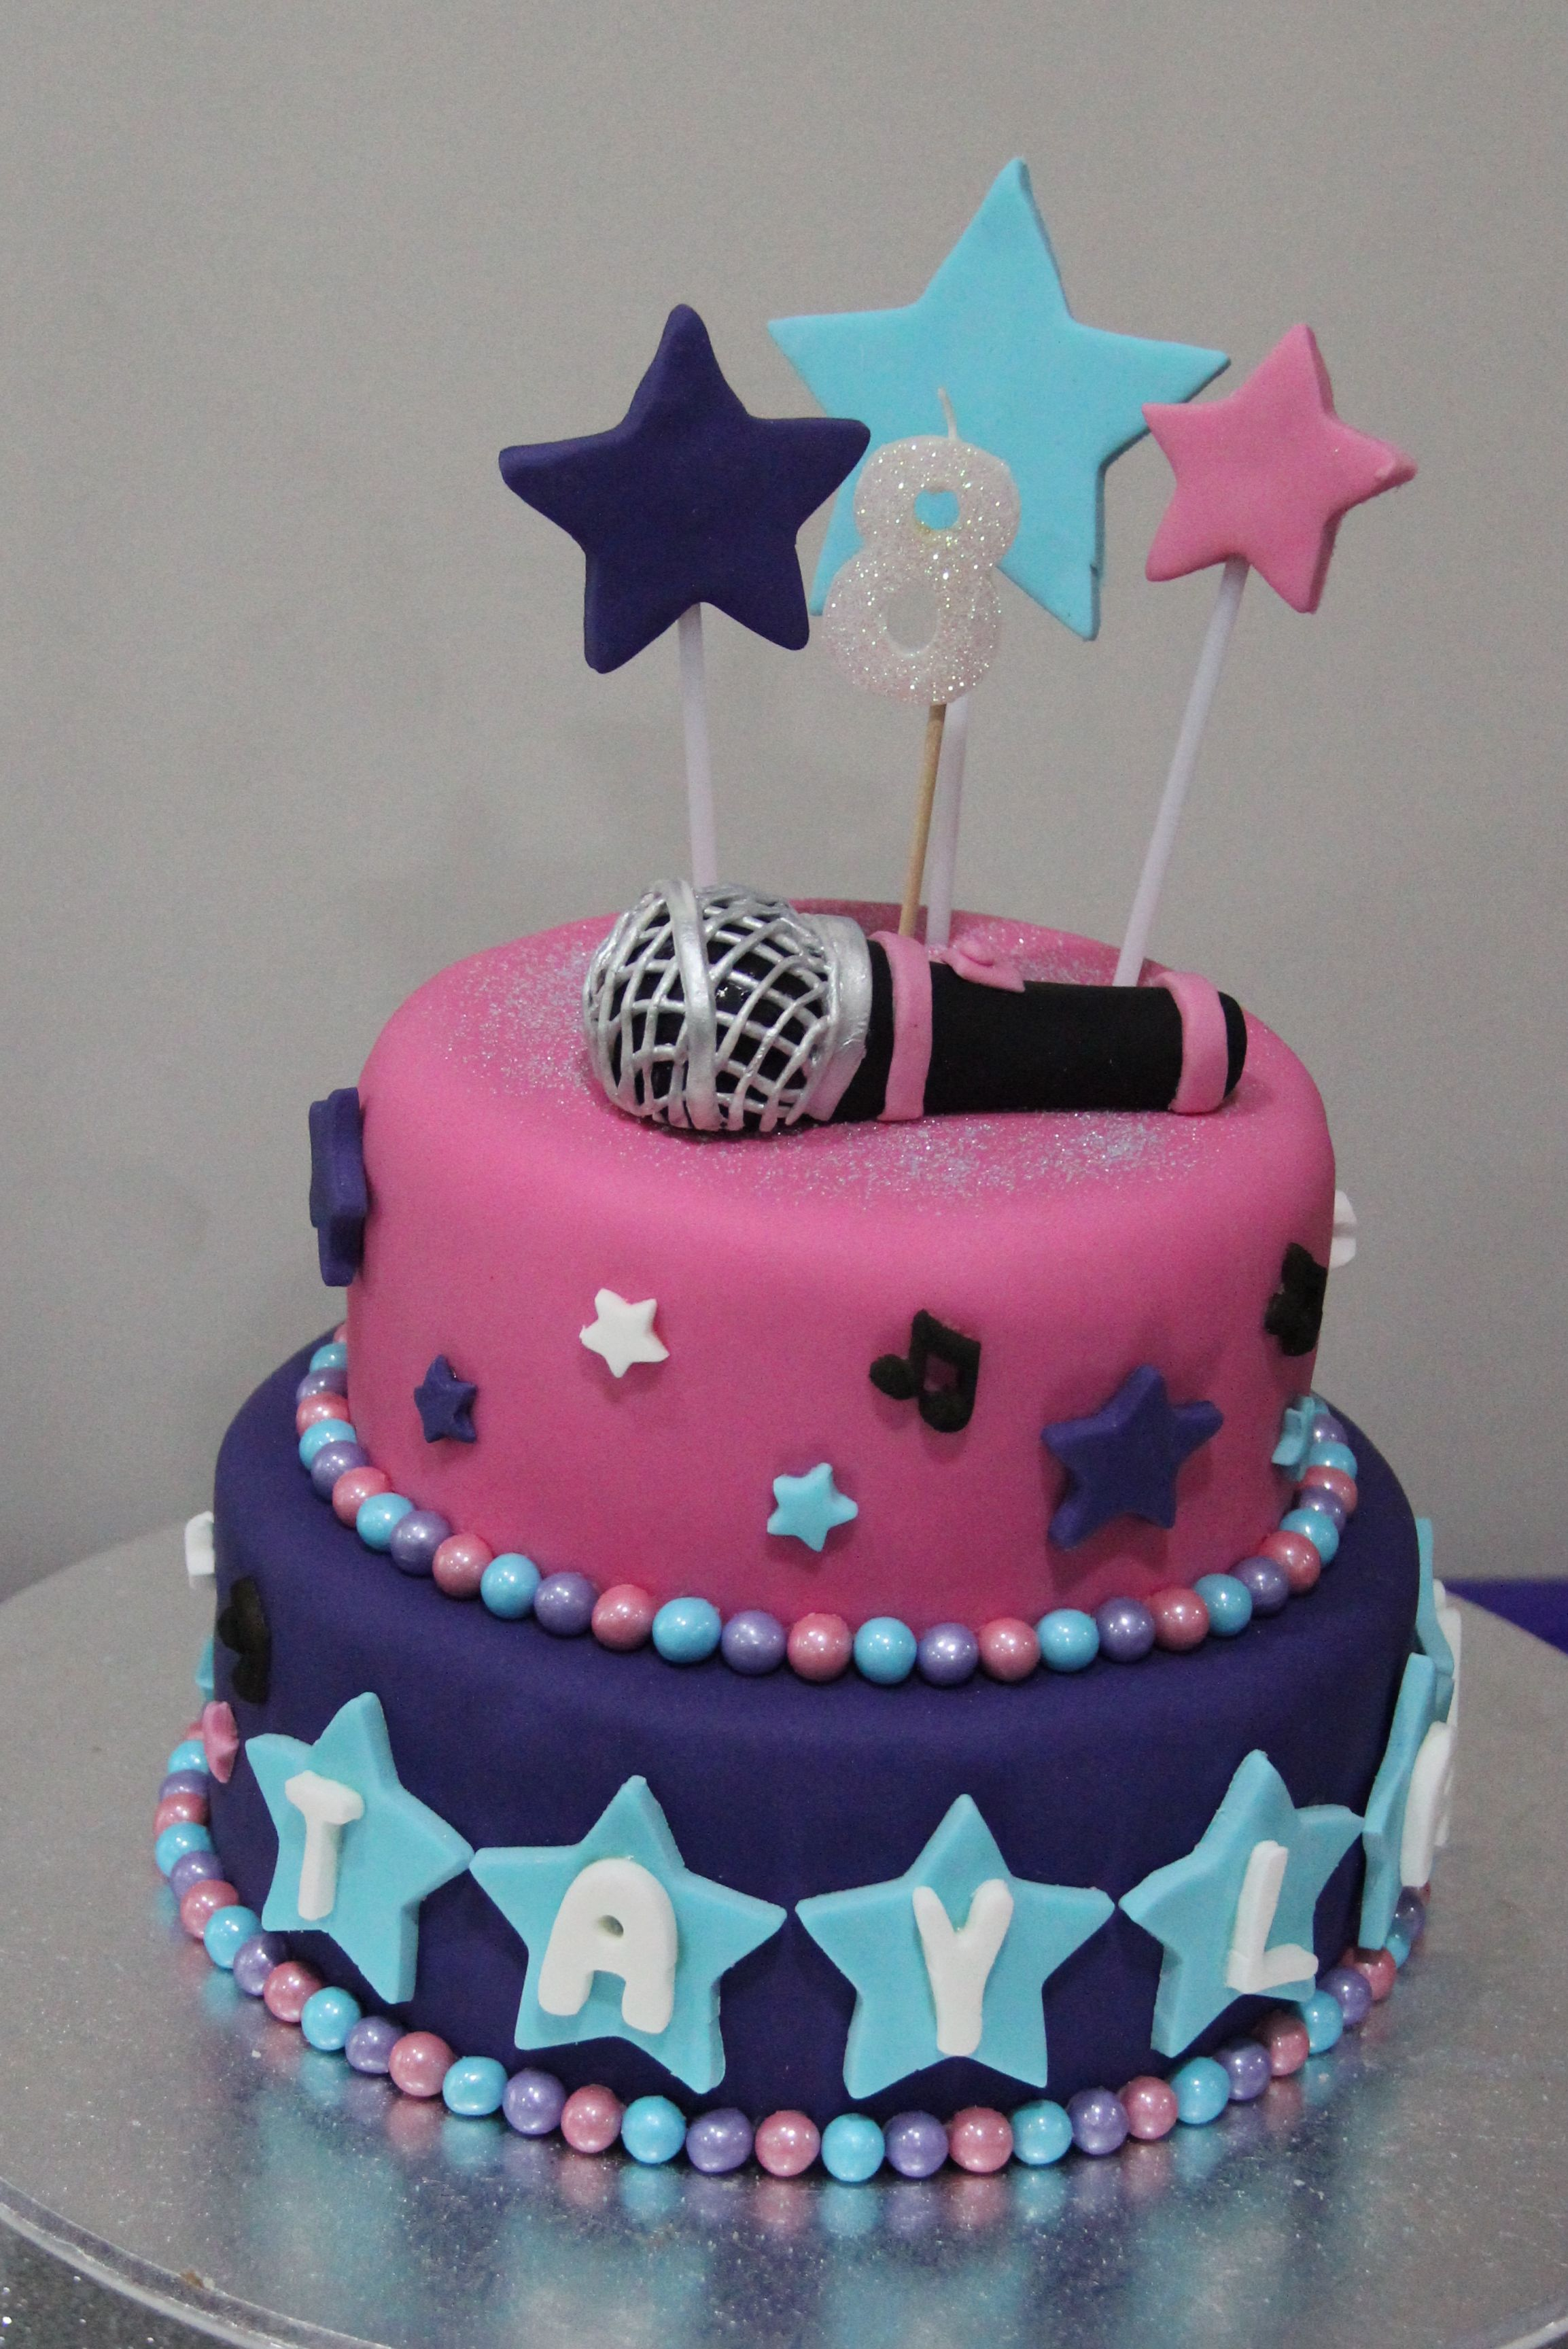 Music Themed Star Cake For Special 8th Birthday Girl Birthday Cake